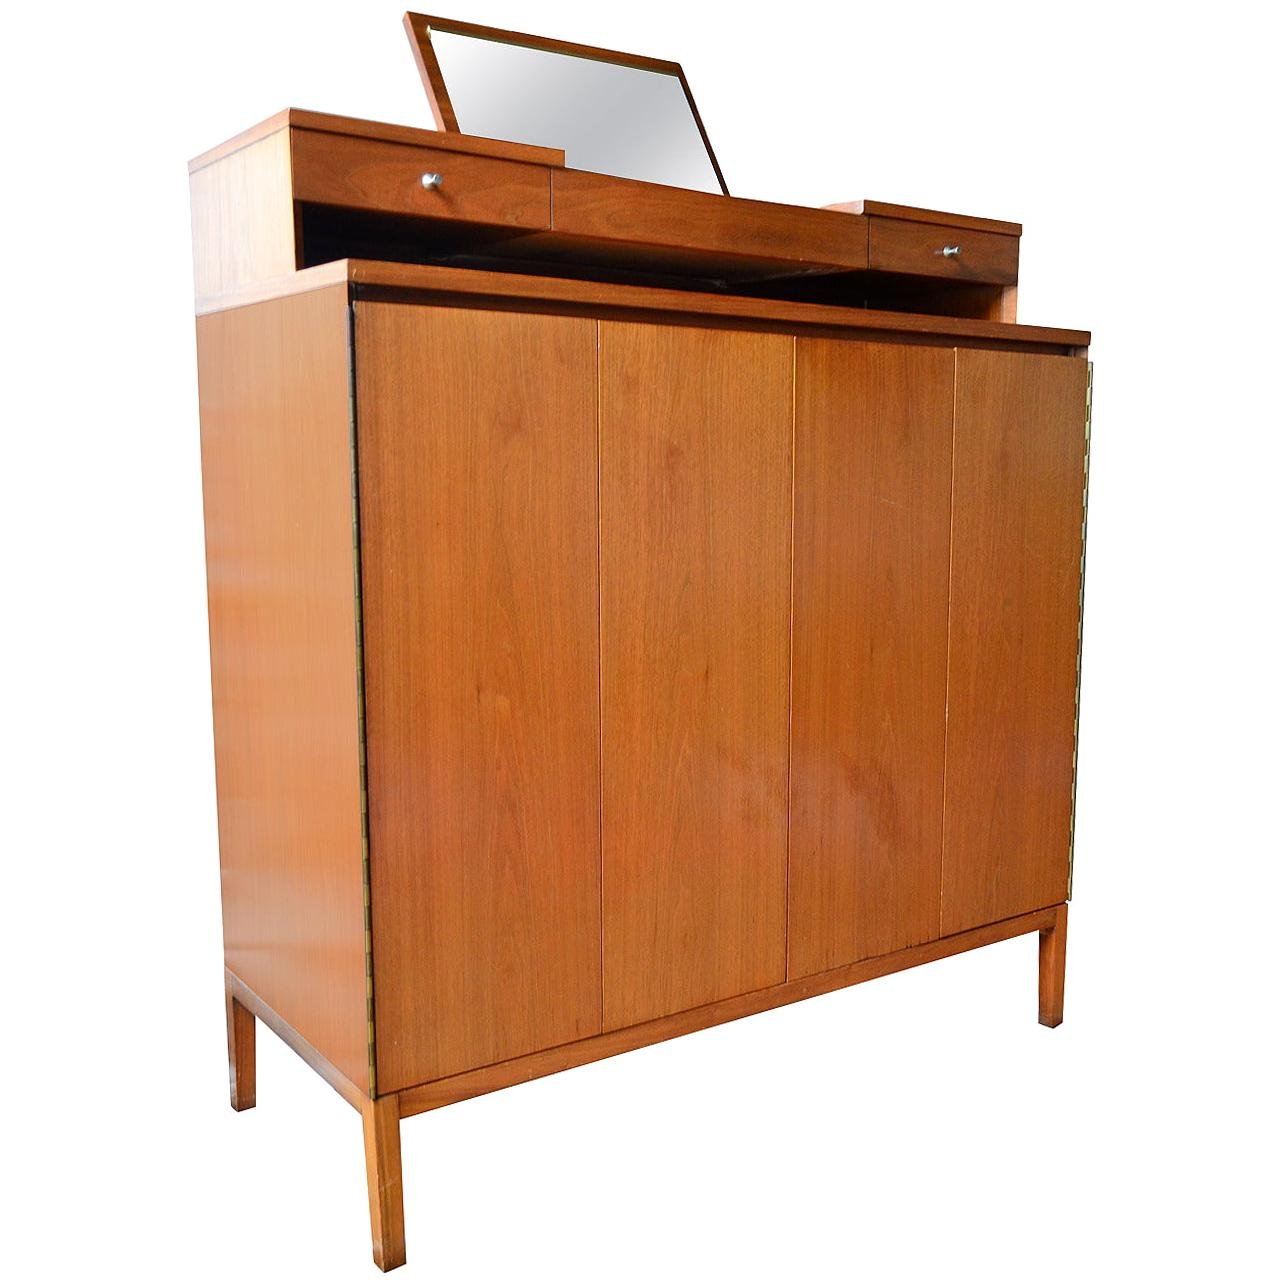 Paul McCobb Gentleman's Tall Chest Irwin Collection for Calvin Furniture, 1956